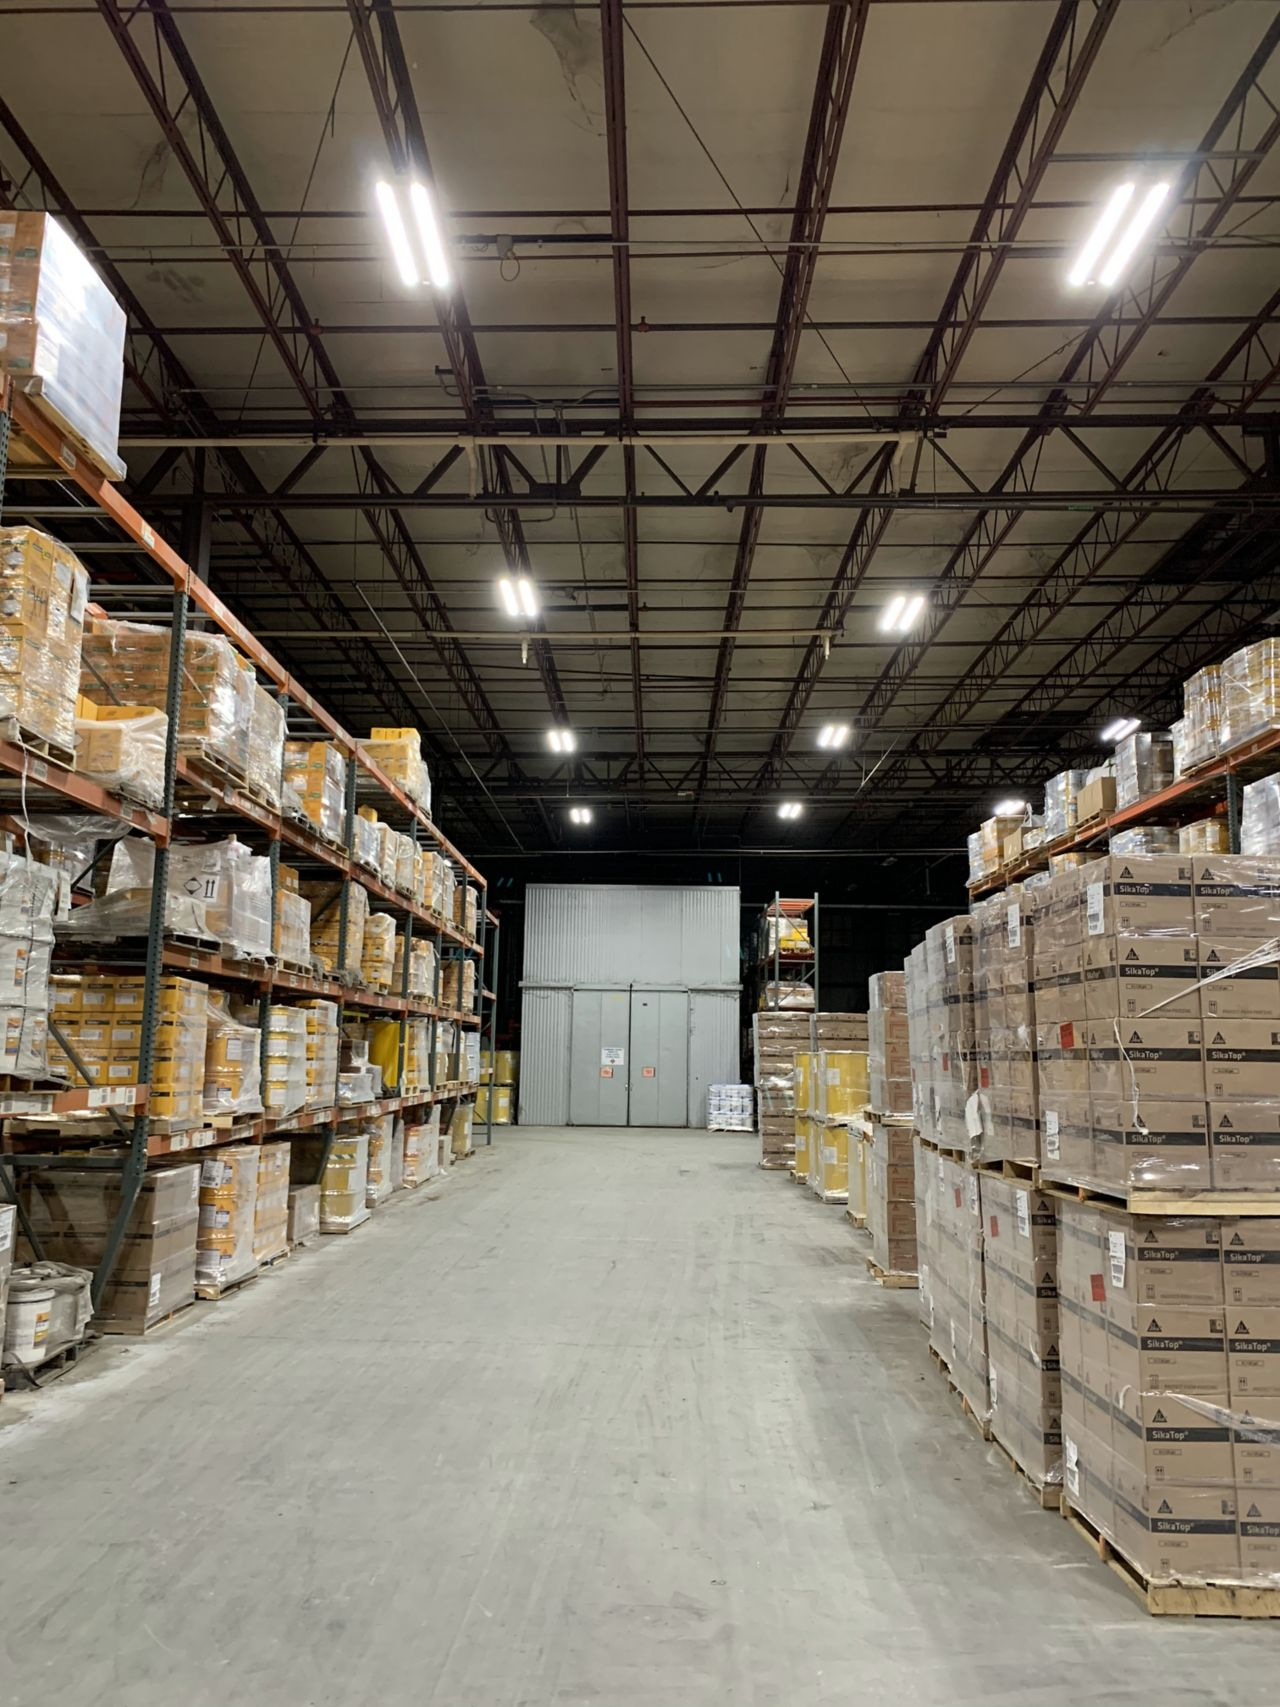 Large metal warehouse shelves forming an isle in a warehouse